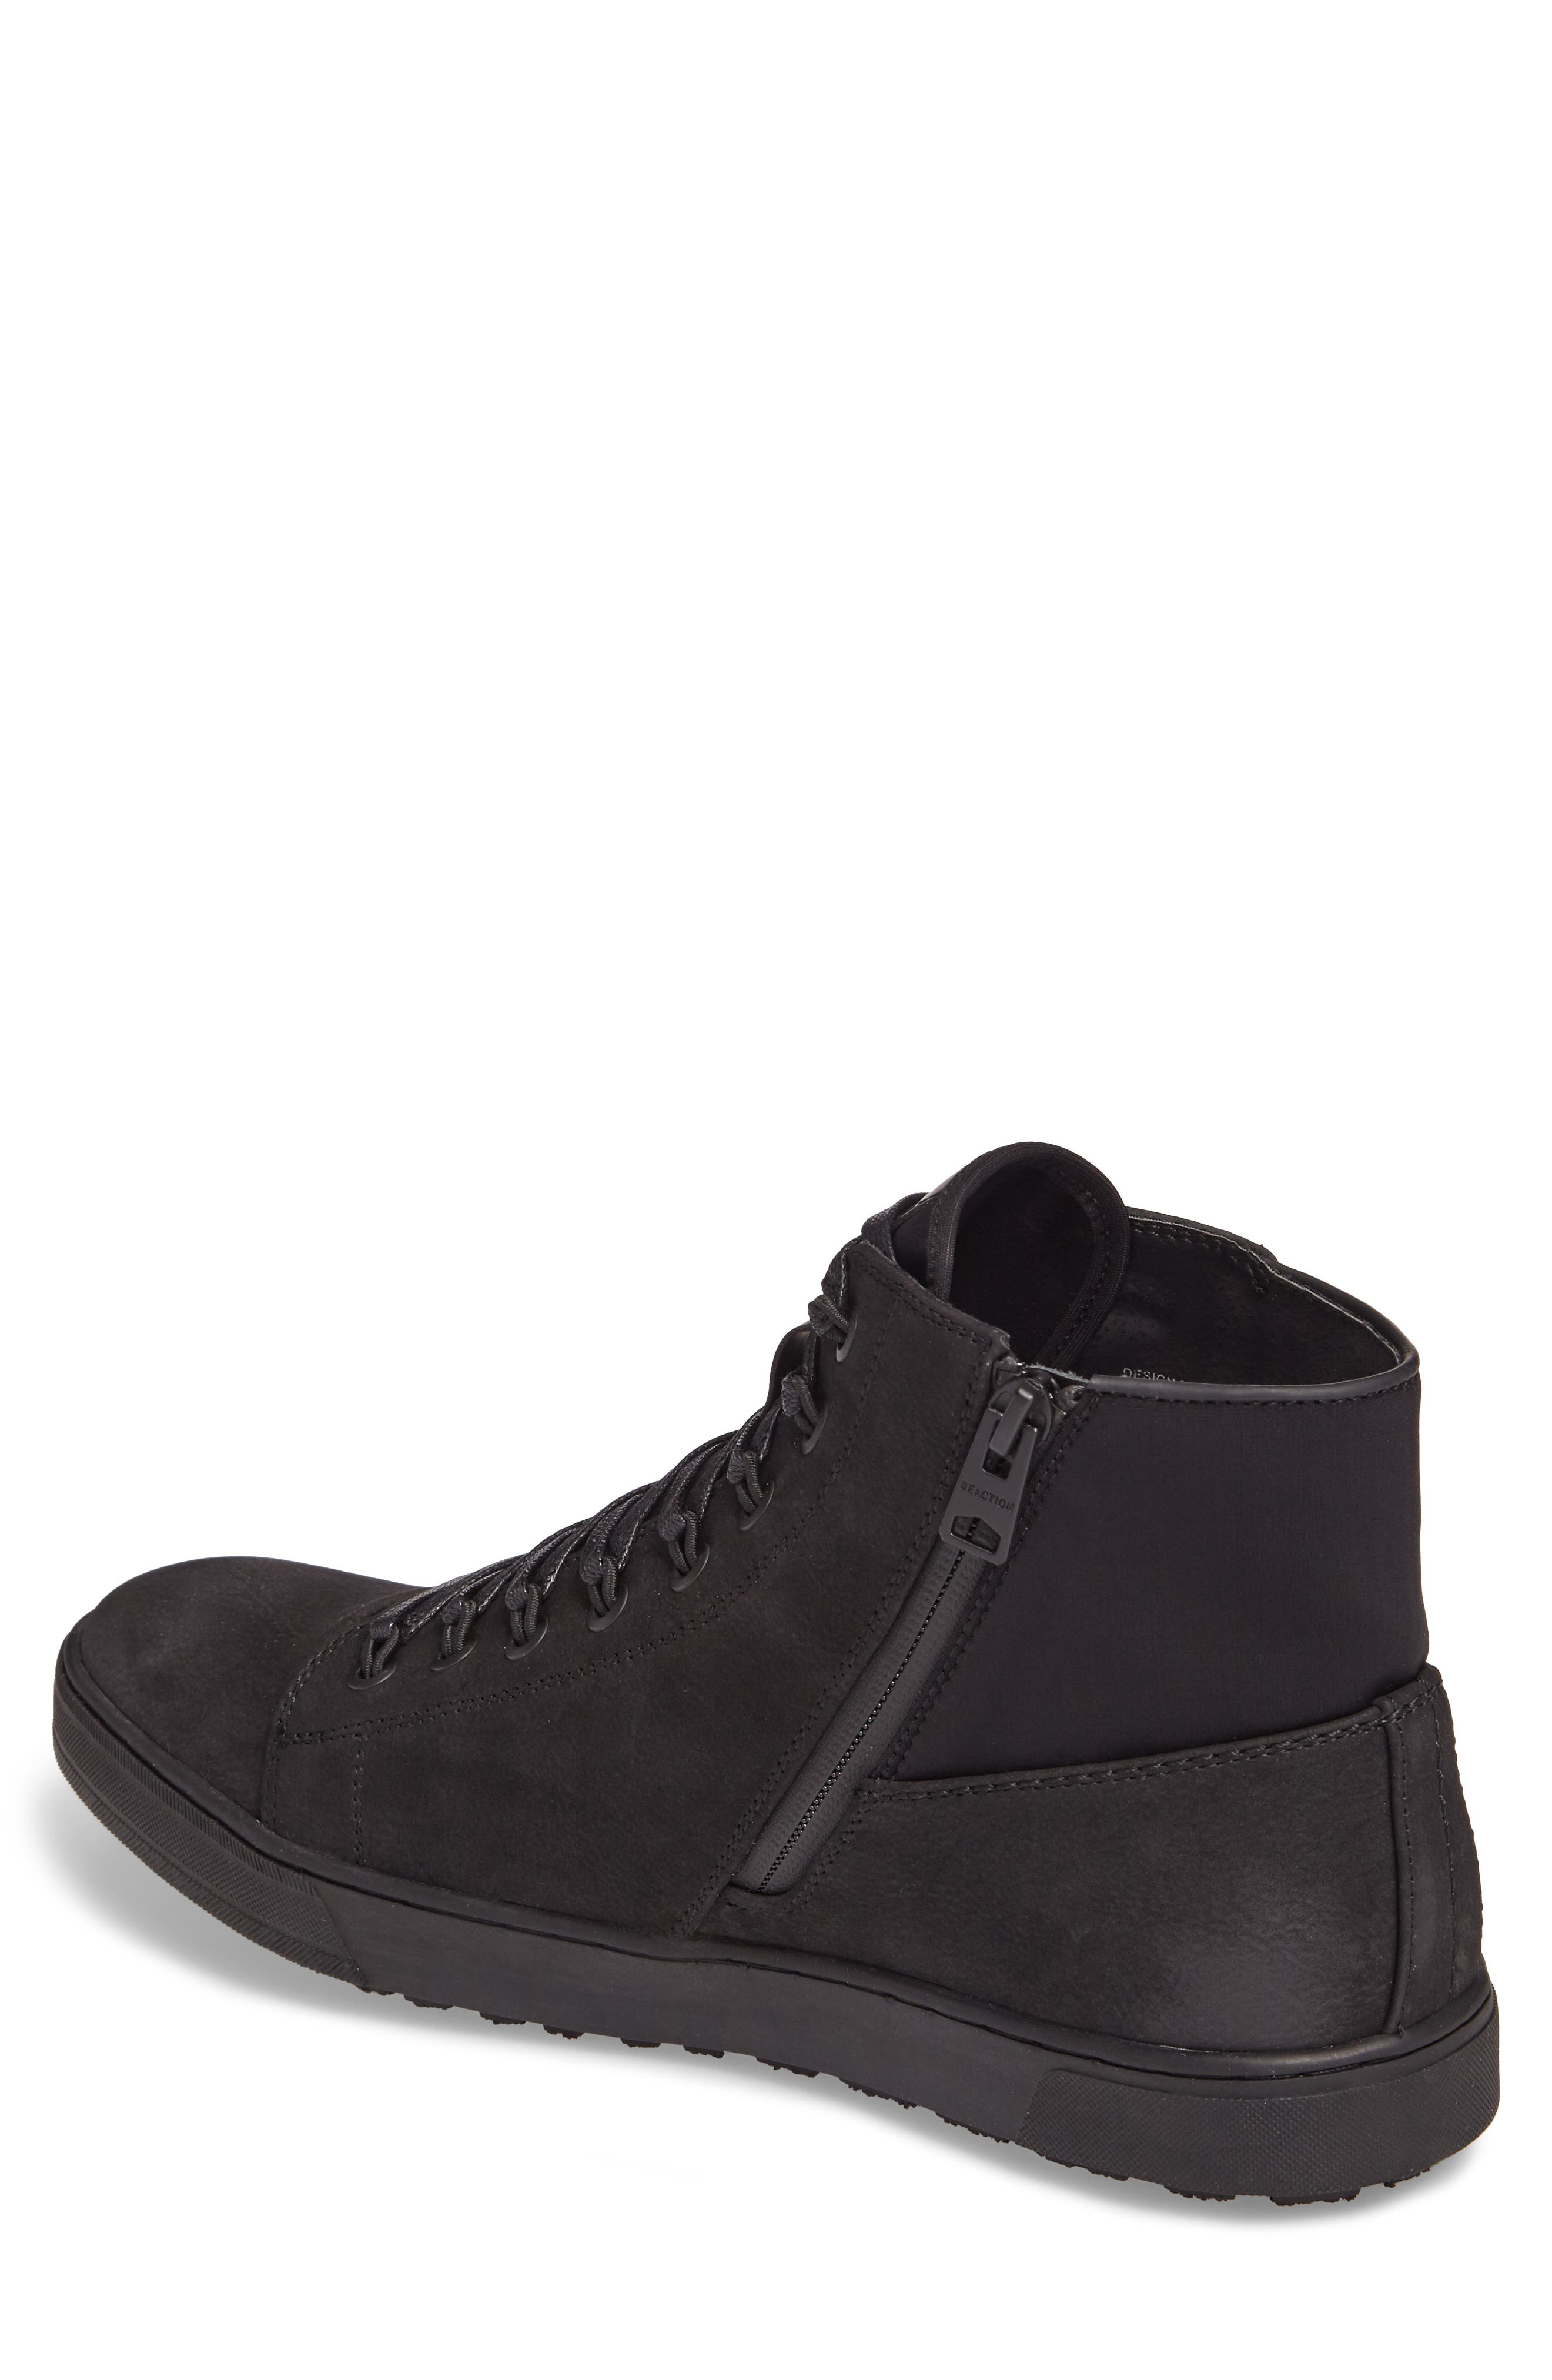 Kenneth Cole Reaction High-Top Sneaker,                             Alternate thumbnail 3, color,